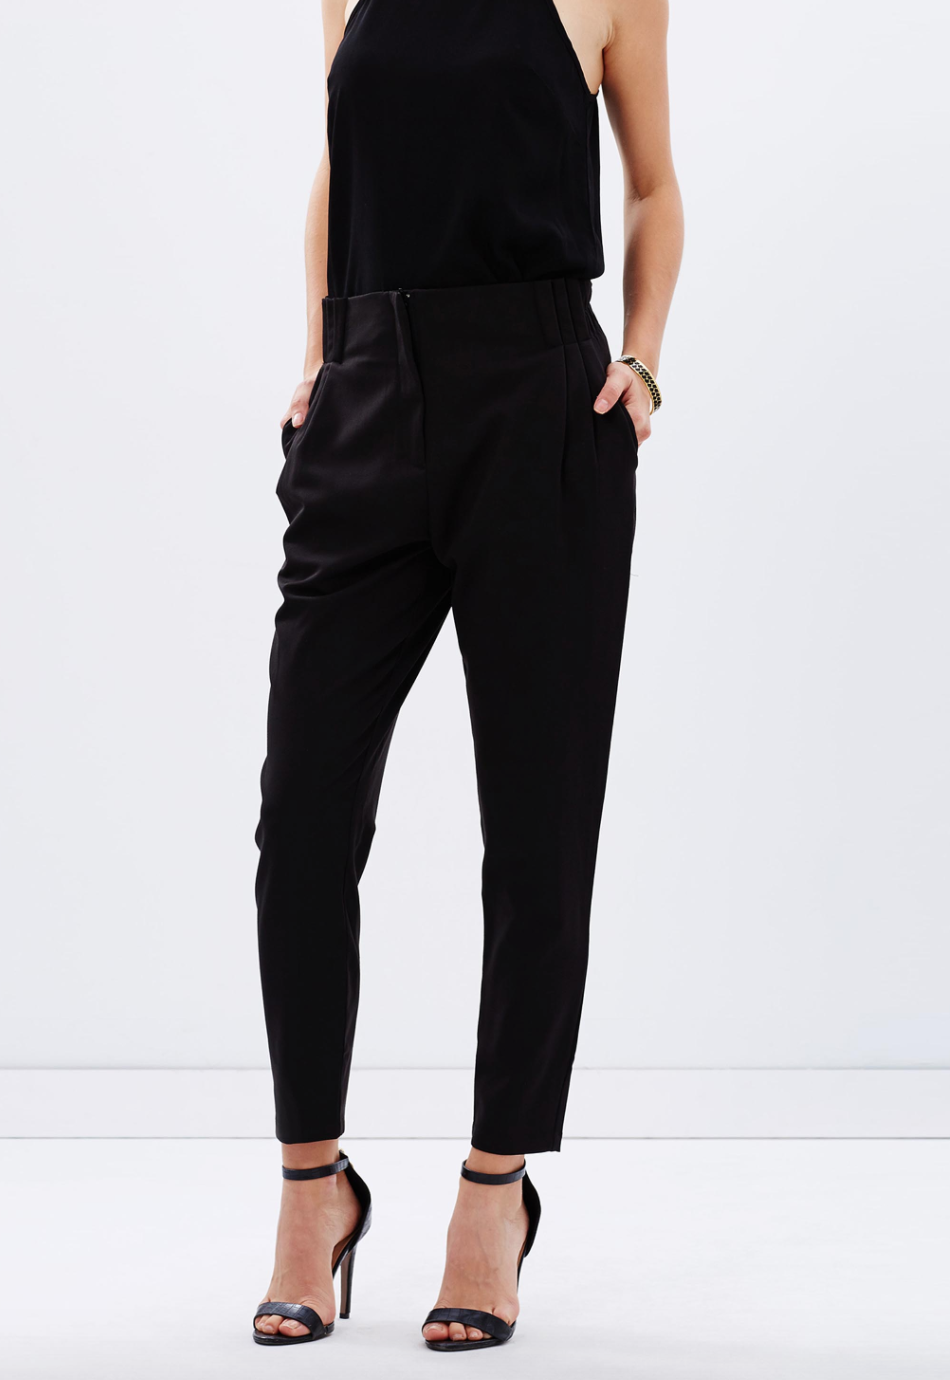 Mossman war of roses pants $89.95